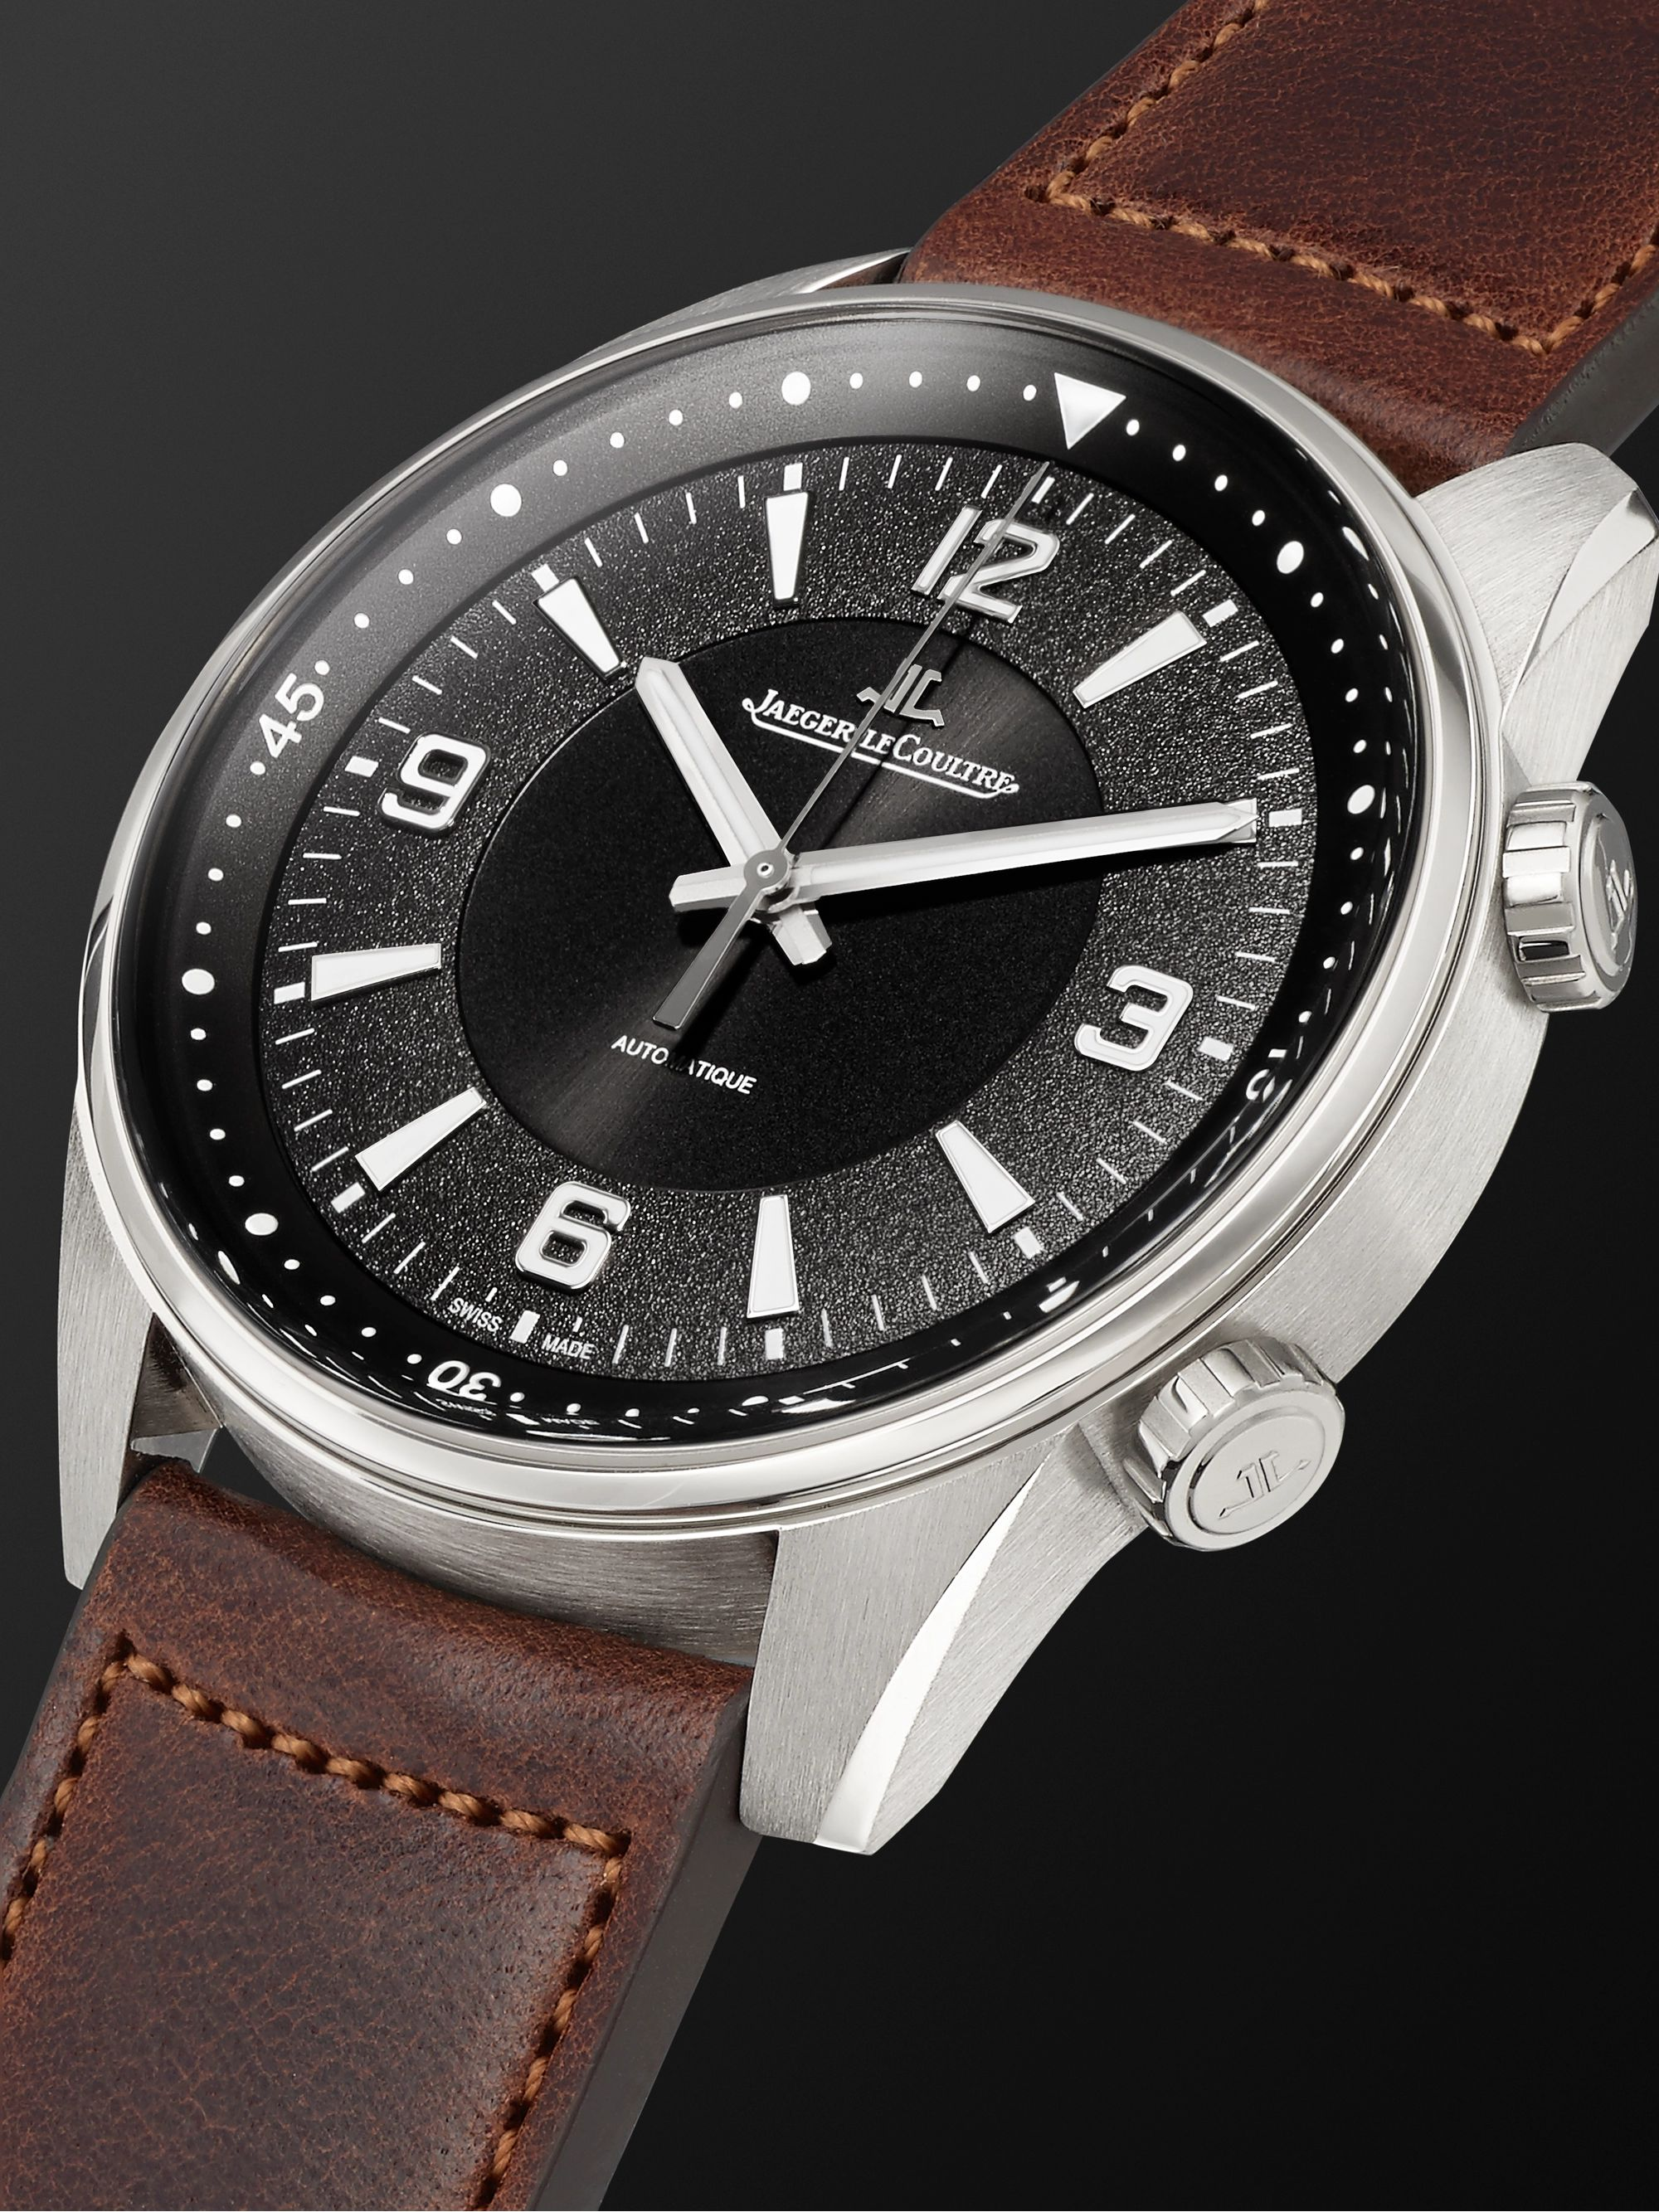 Jaeger-LeCoultre Polaris Automatic Stainless Steel and Leather Watch, Ref. No. Q9008471